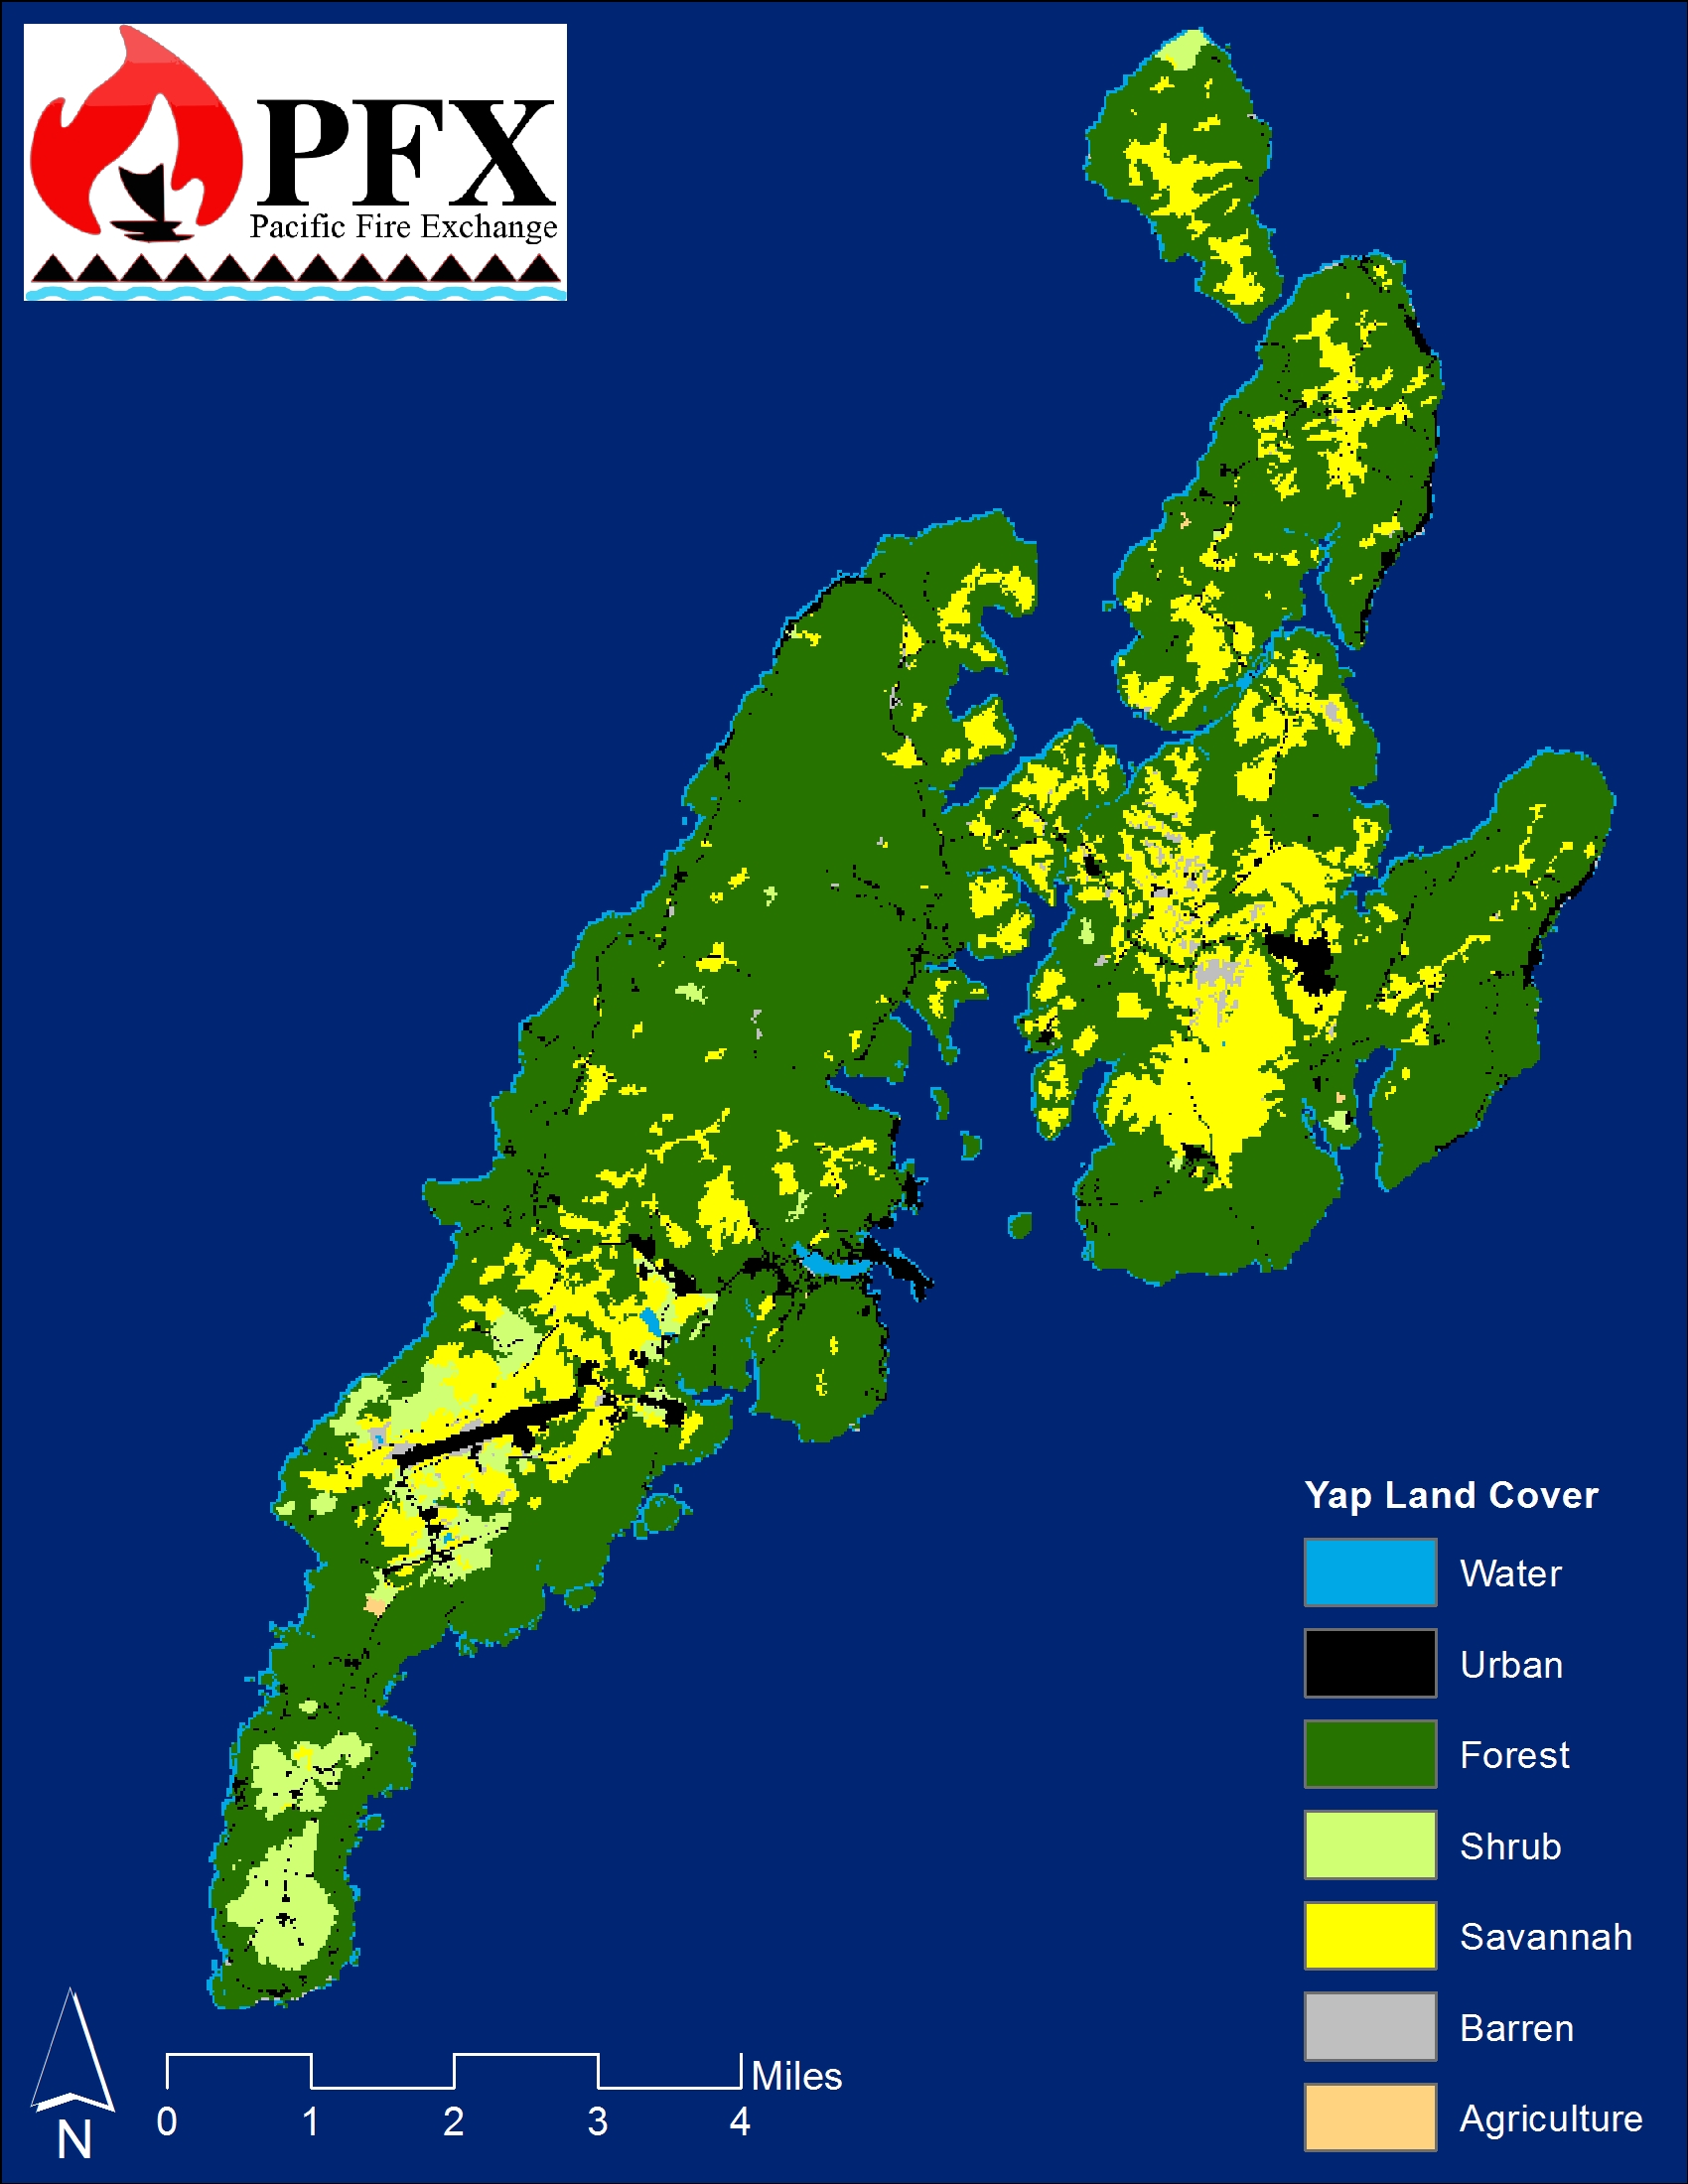 Yap Land Cover